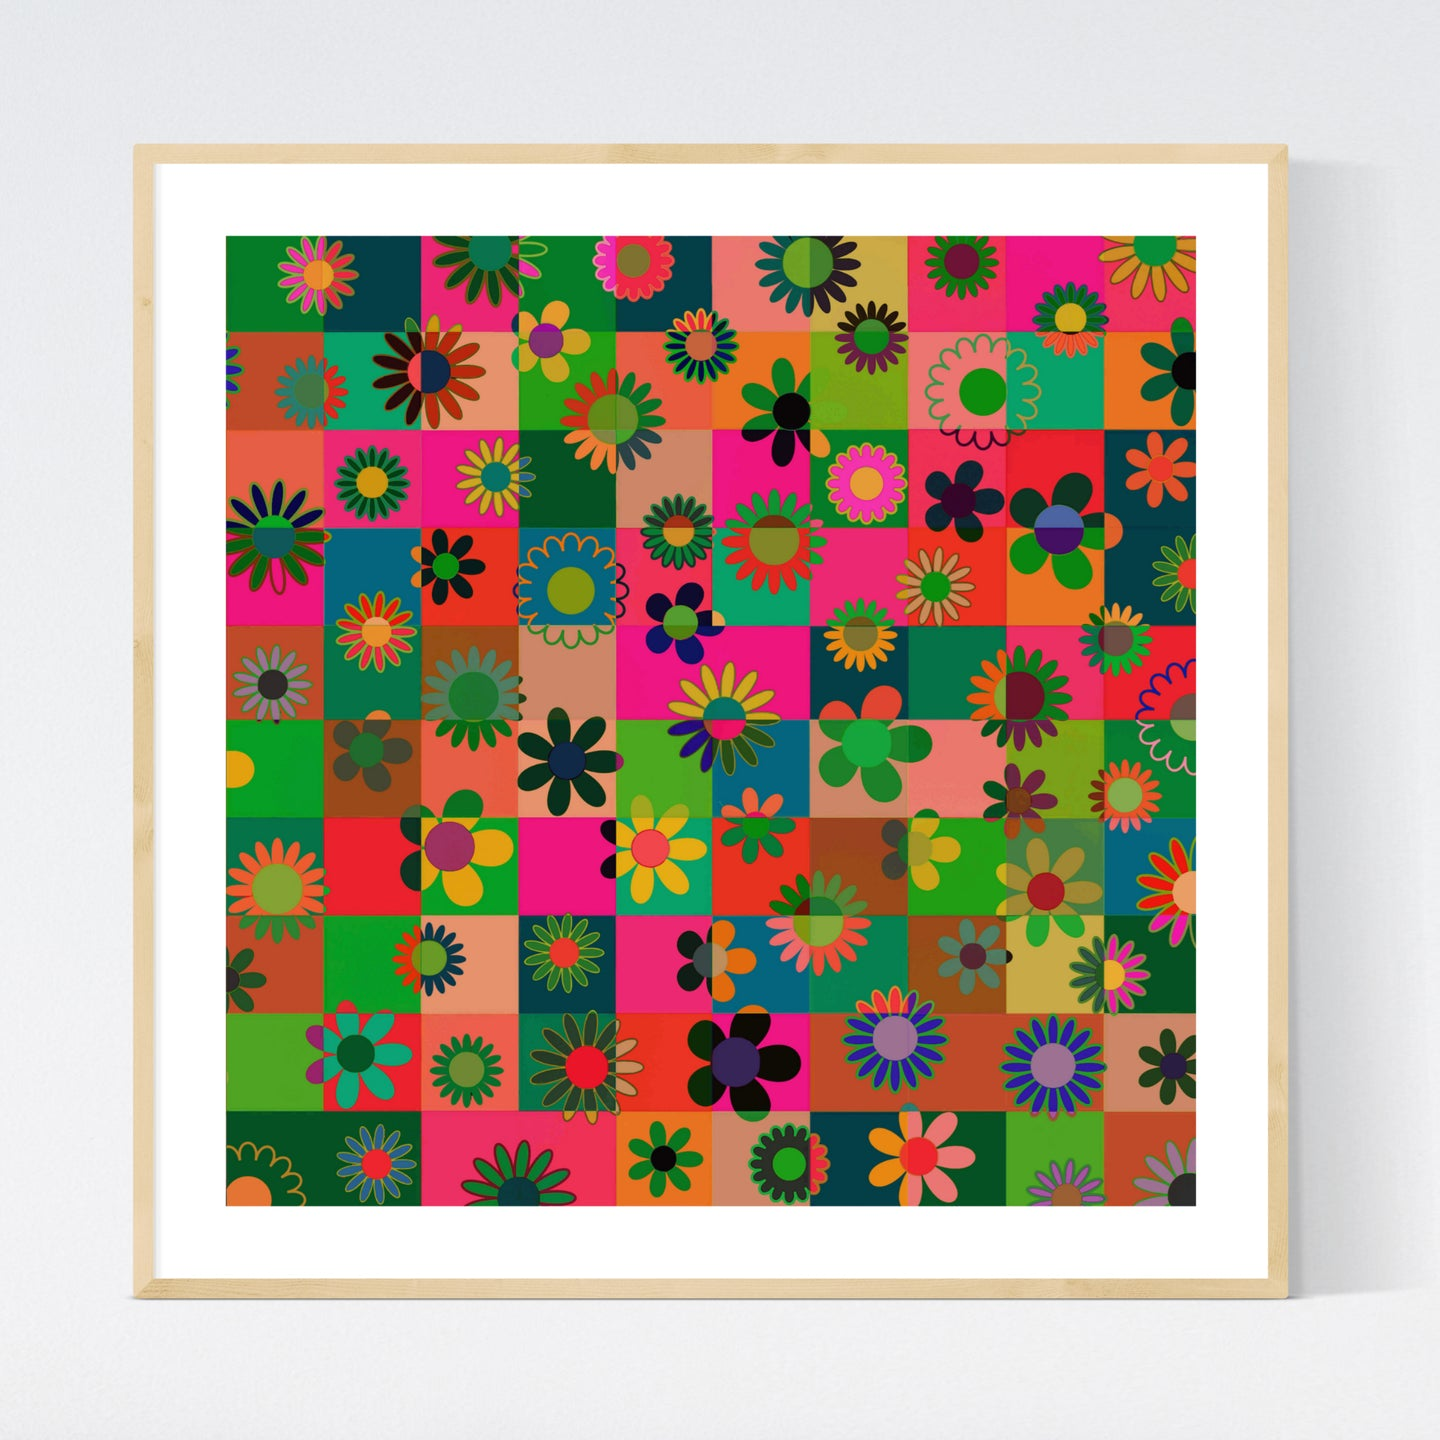 Flowers and Cubes I - abstrakt kunsttryk af Helt Sort